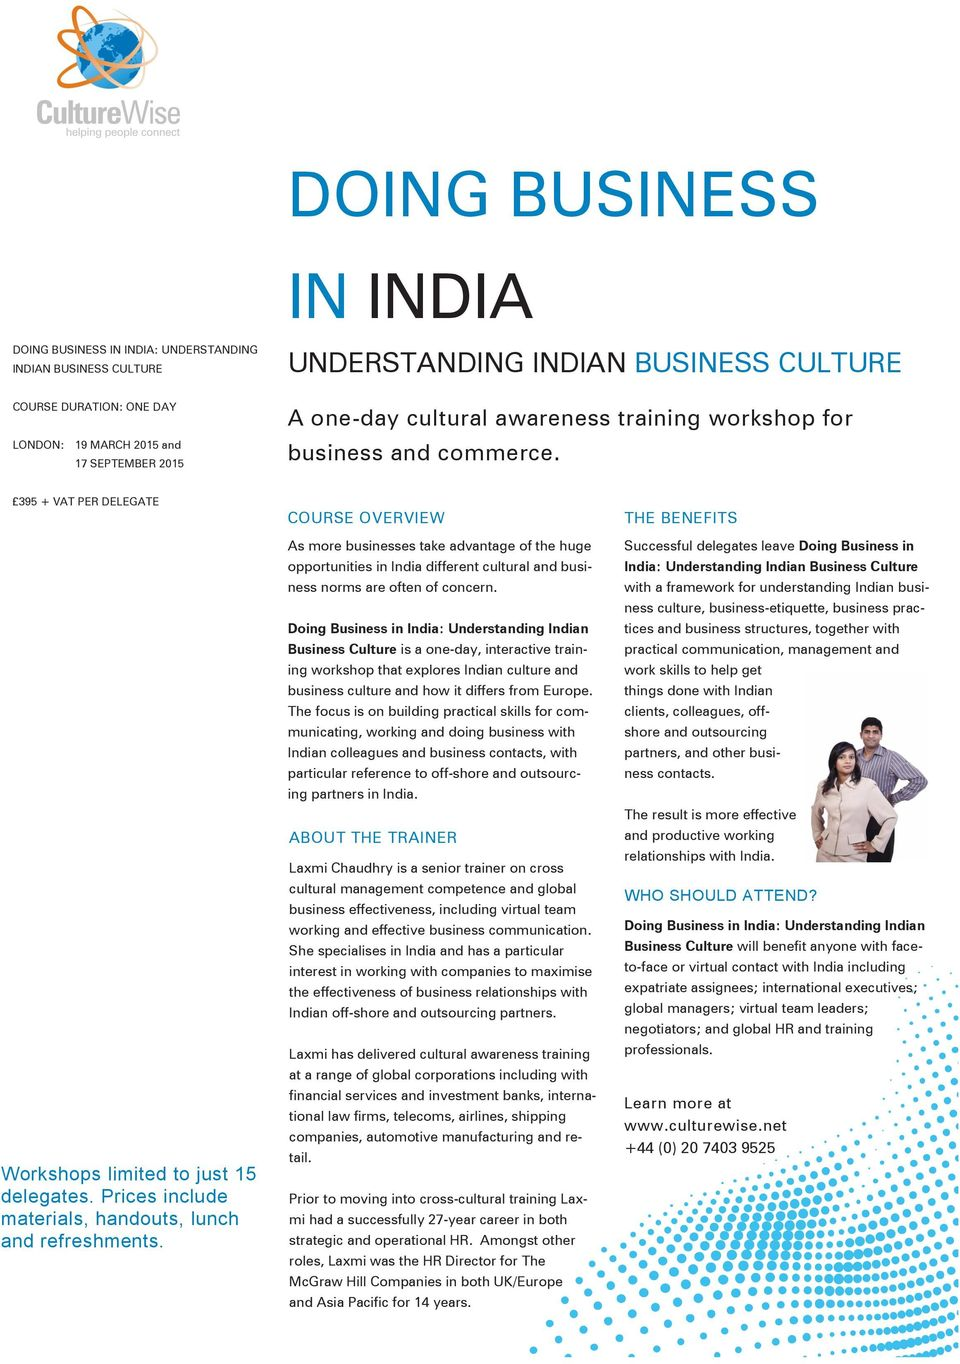 COURSE OVERVIEW As more businesses take advantage of the huge opportunities in India different cultural and business norms are often of concern.